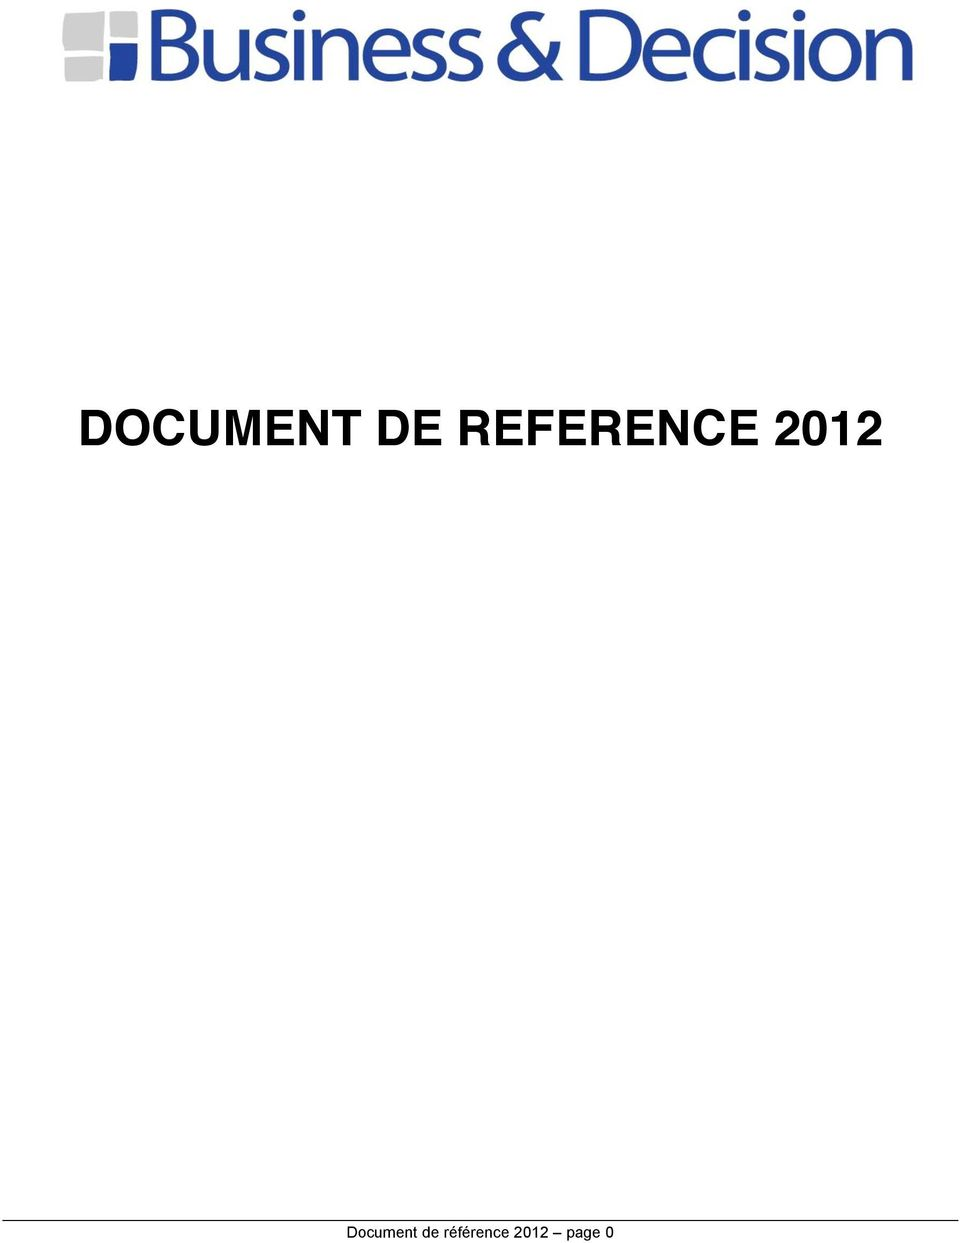 Document de